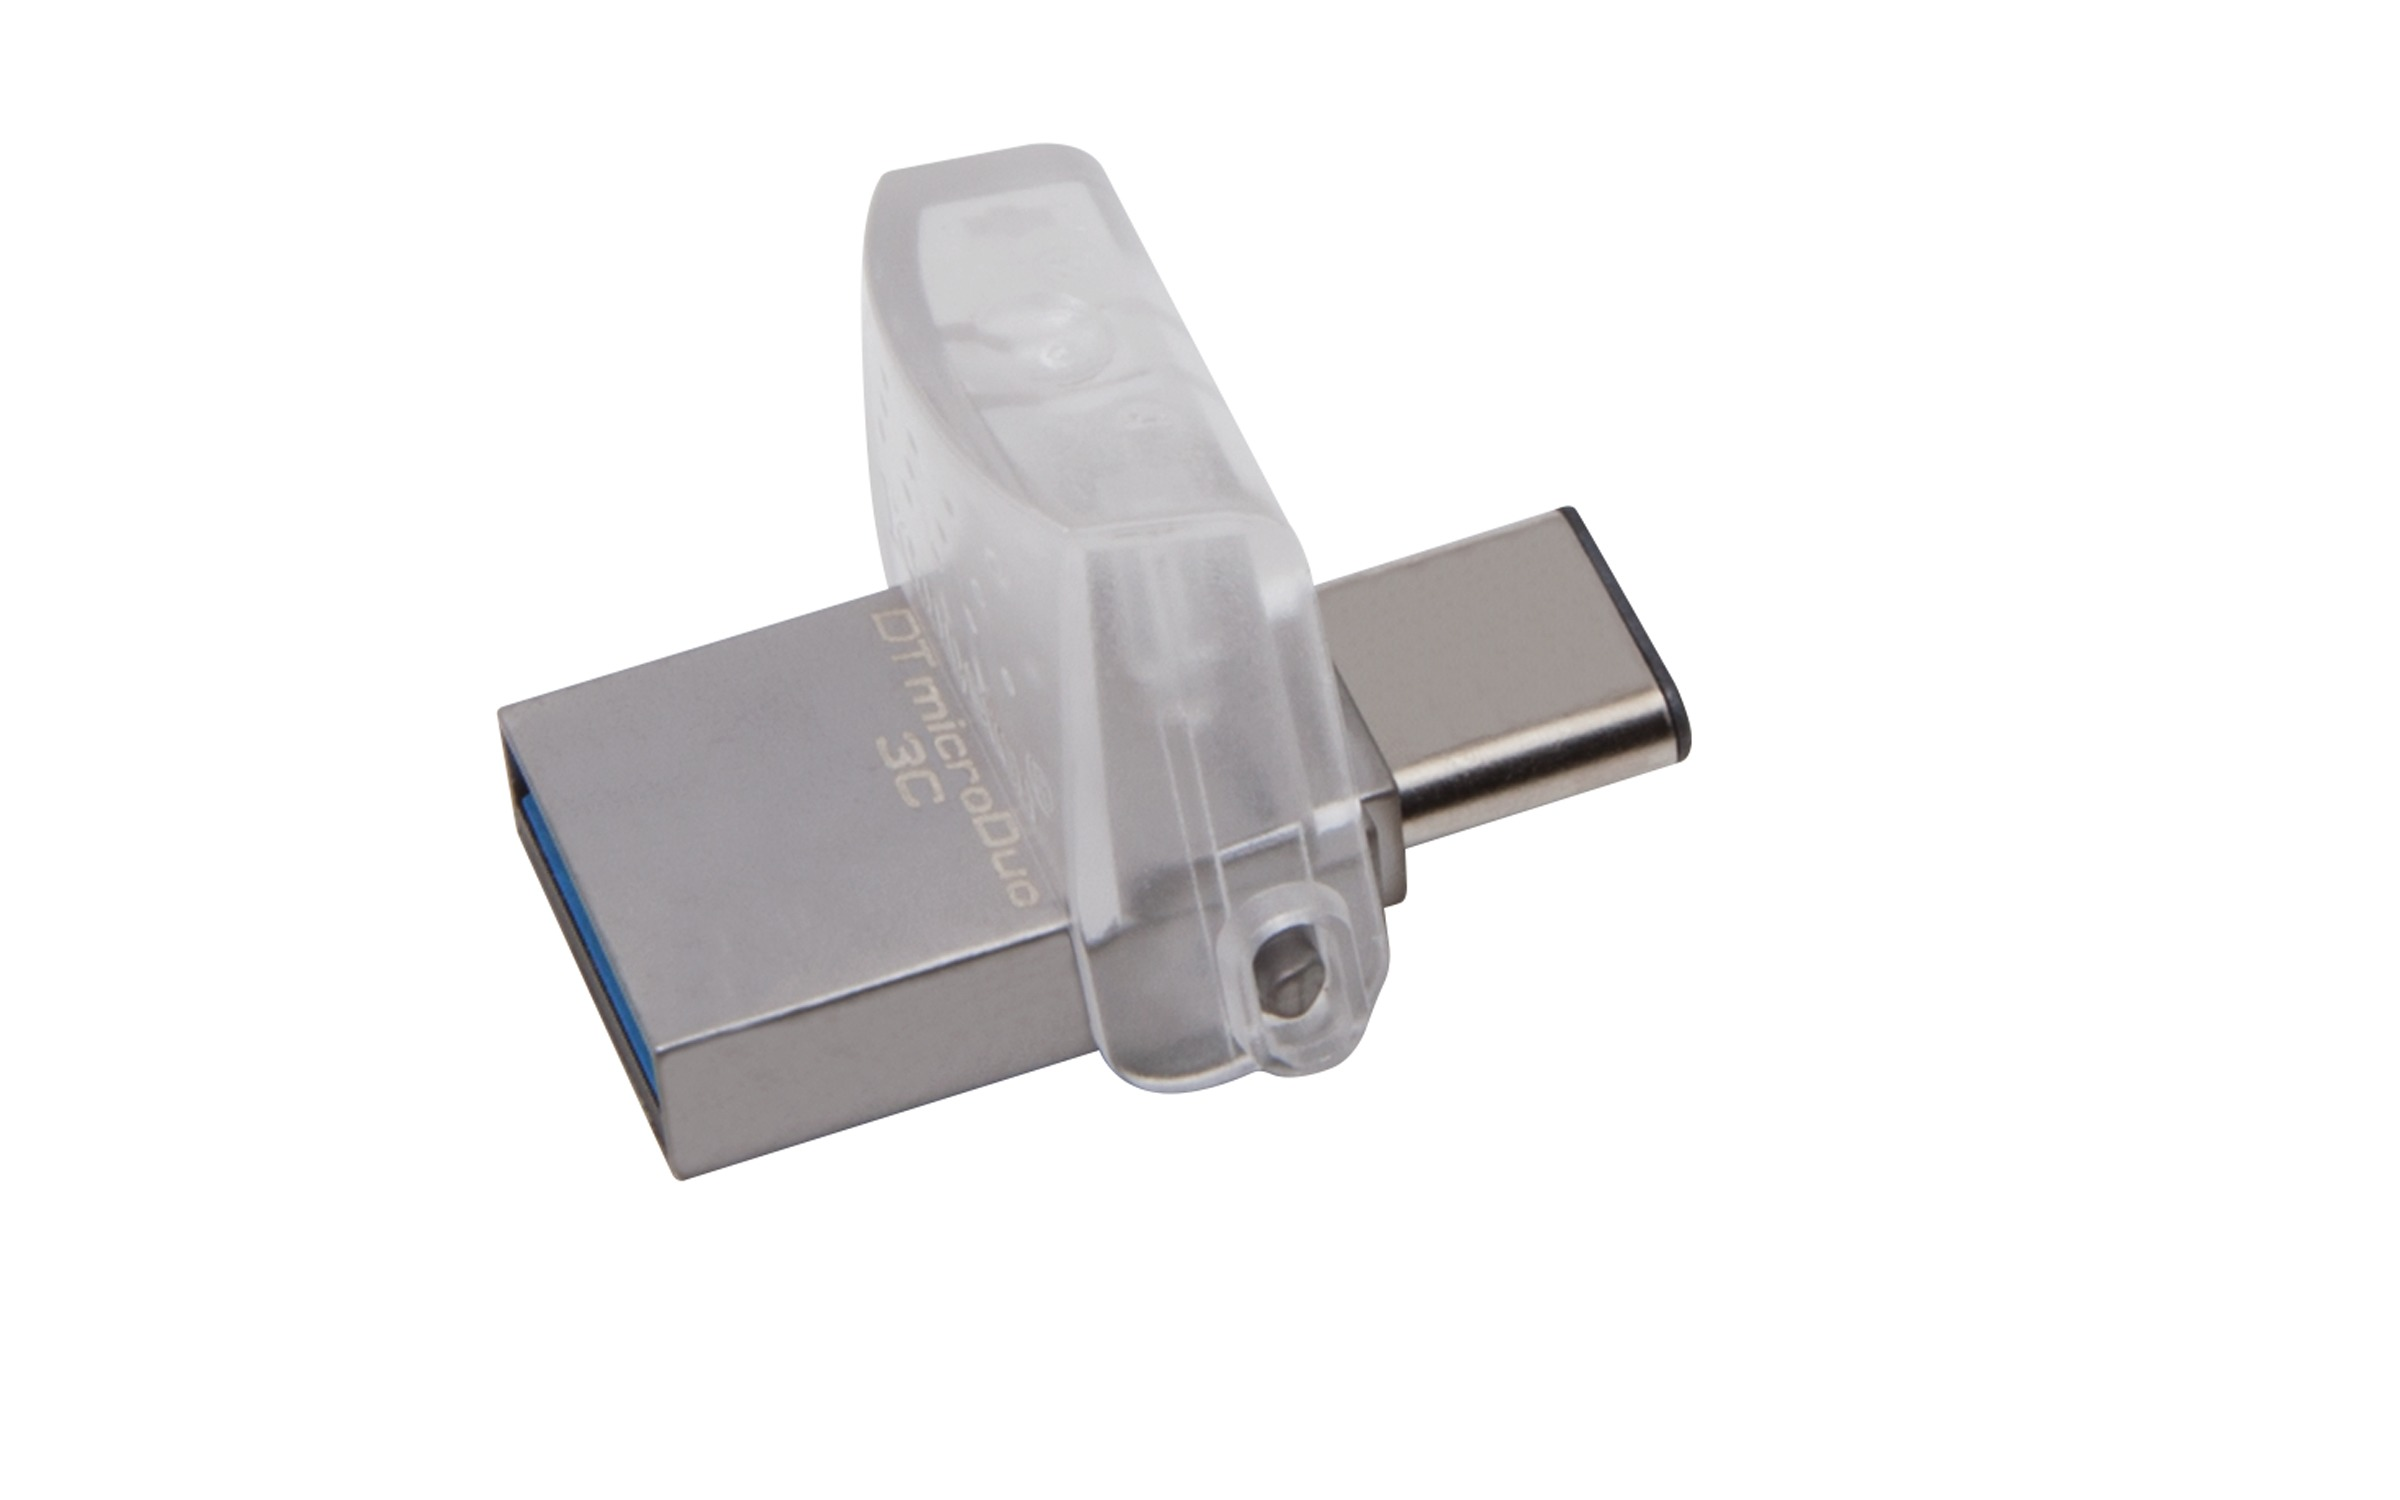 Korting Kingston DataTraveler USB 3.0 MicroDuo 64GB usb sticks